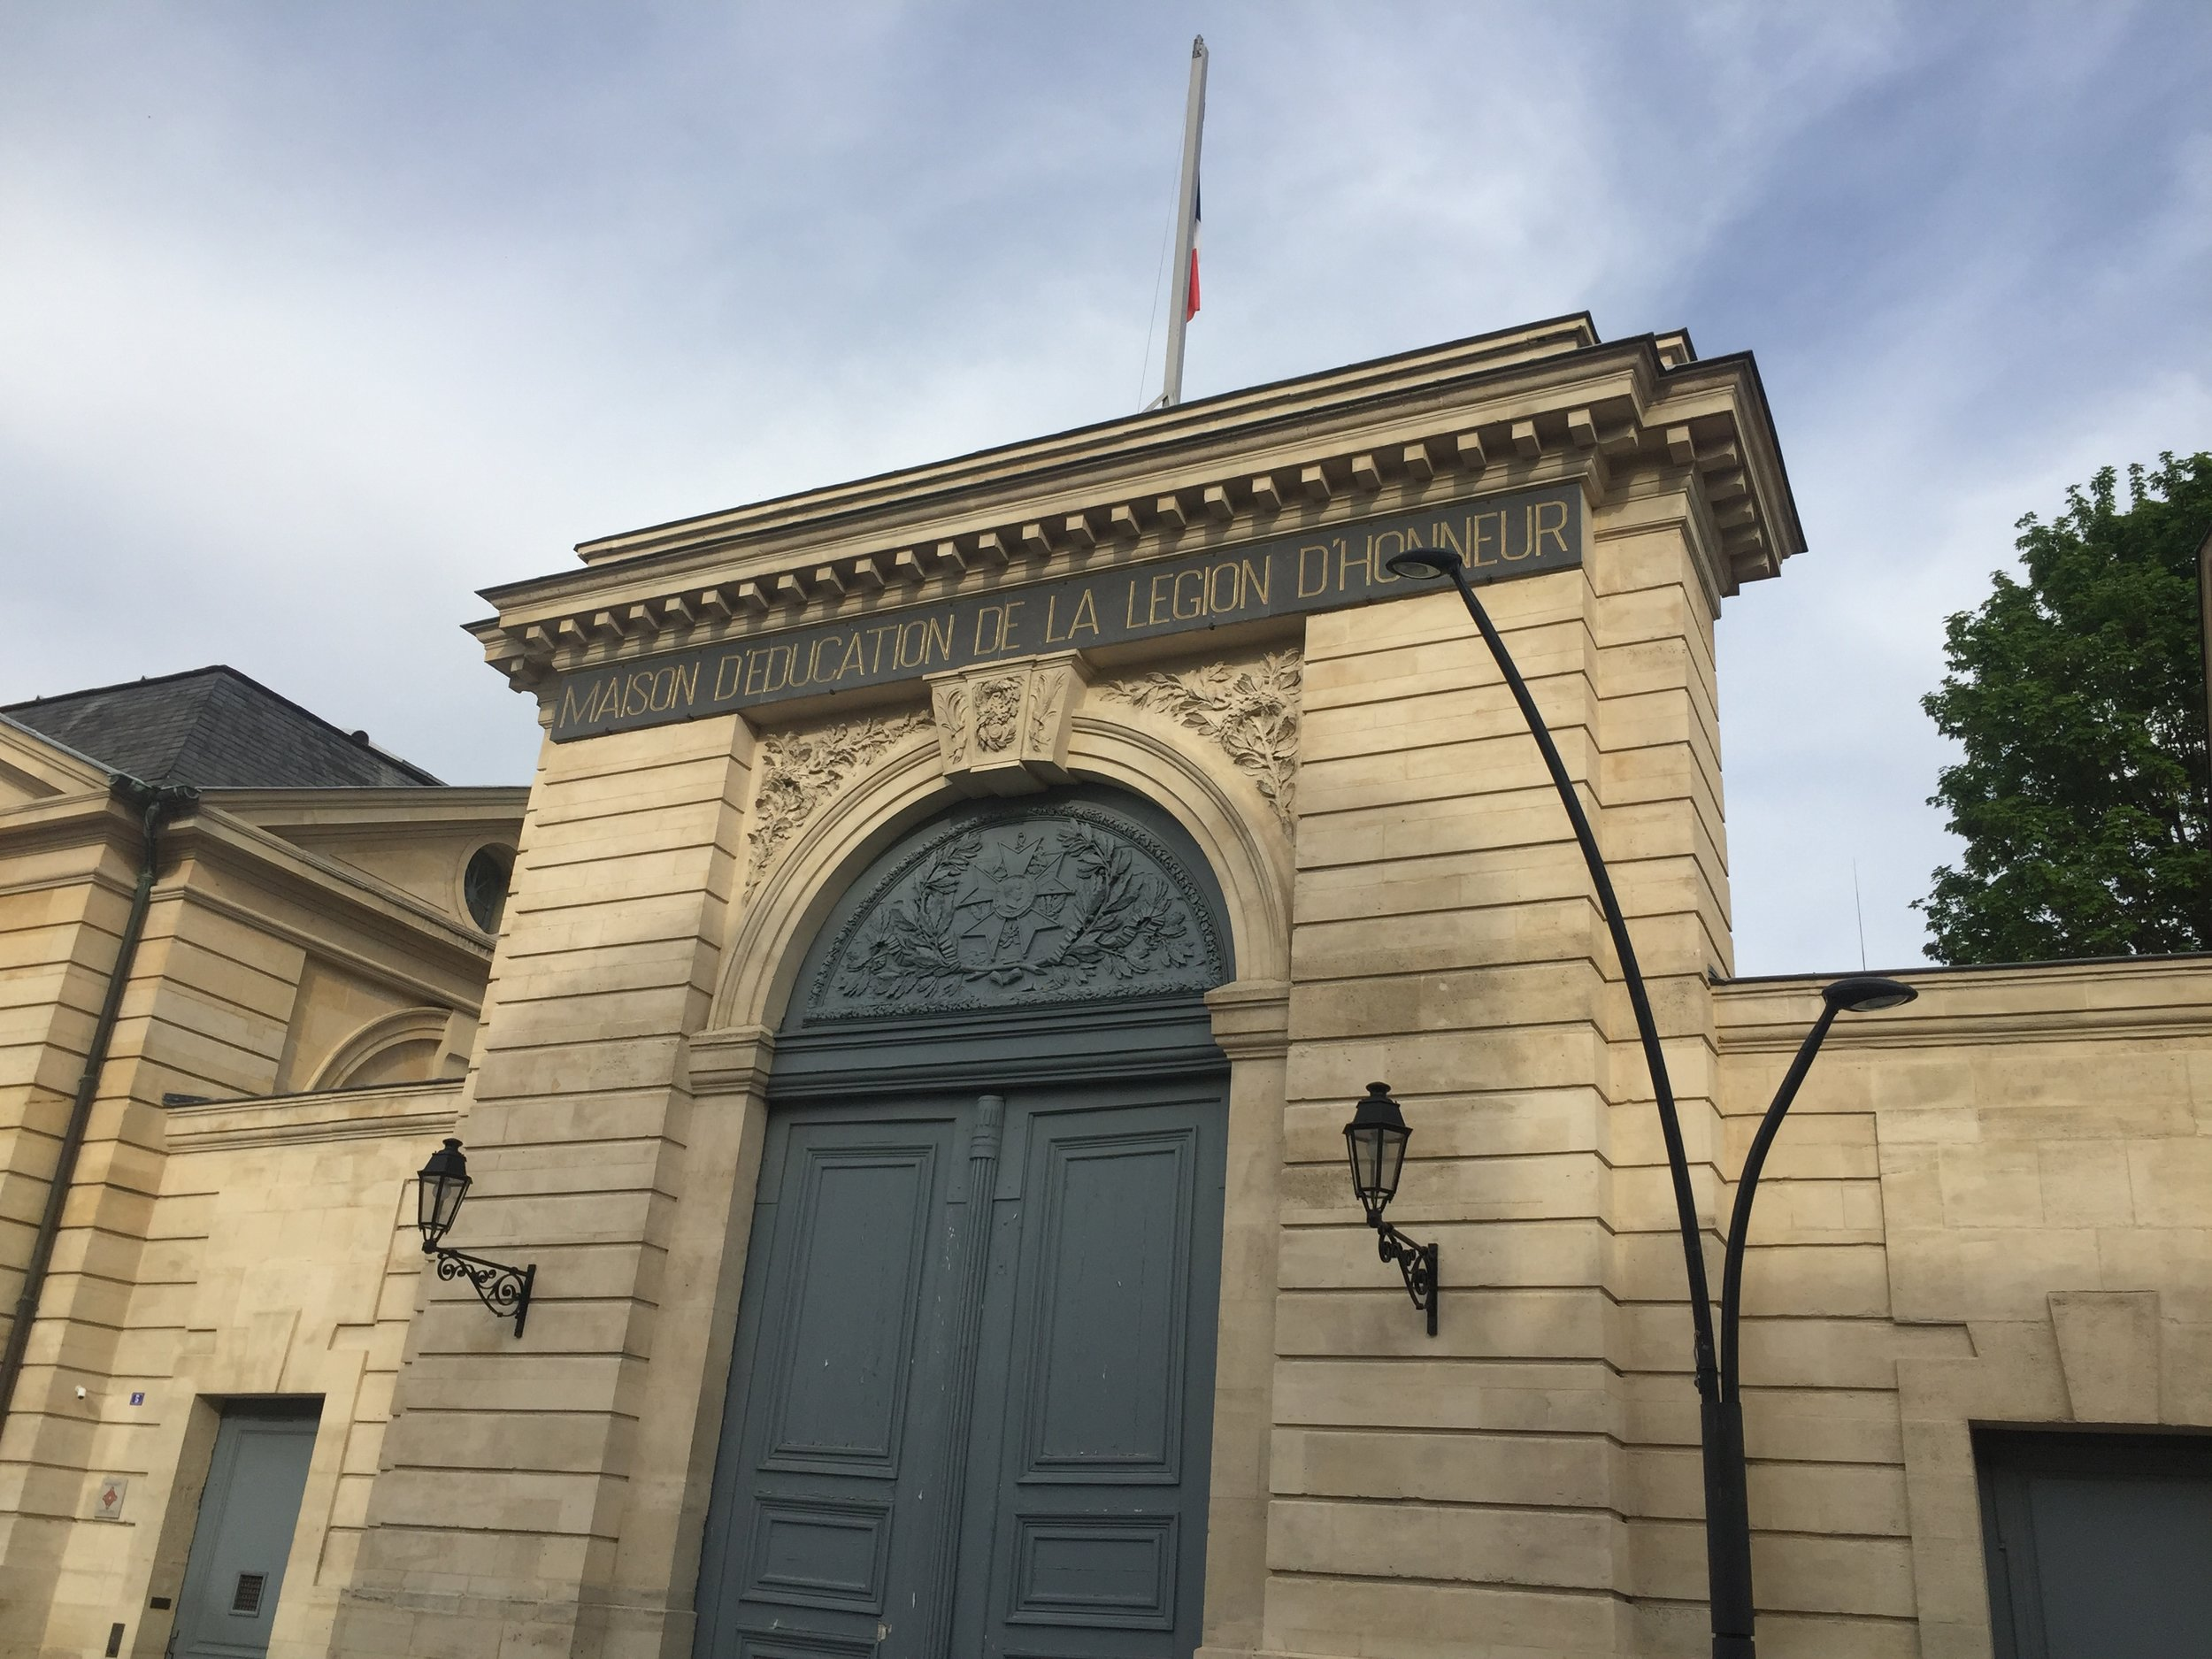 Maison d'éducation de la Légion d'honneur - visit Paris with kids